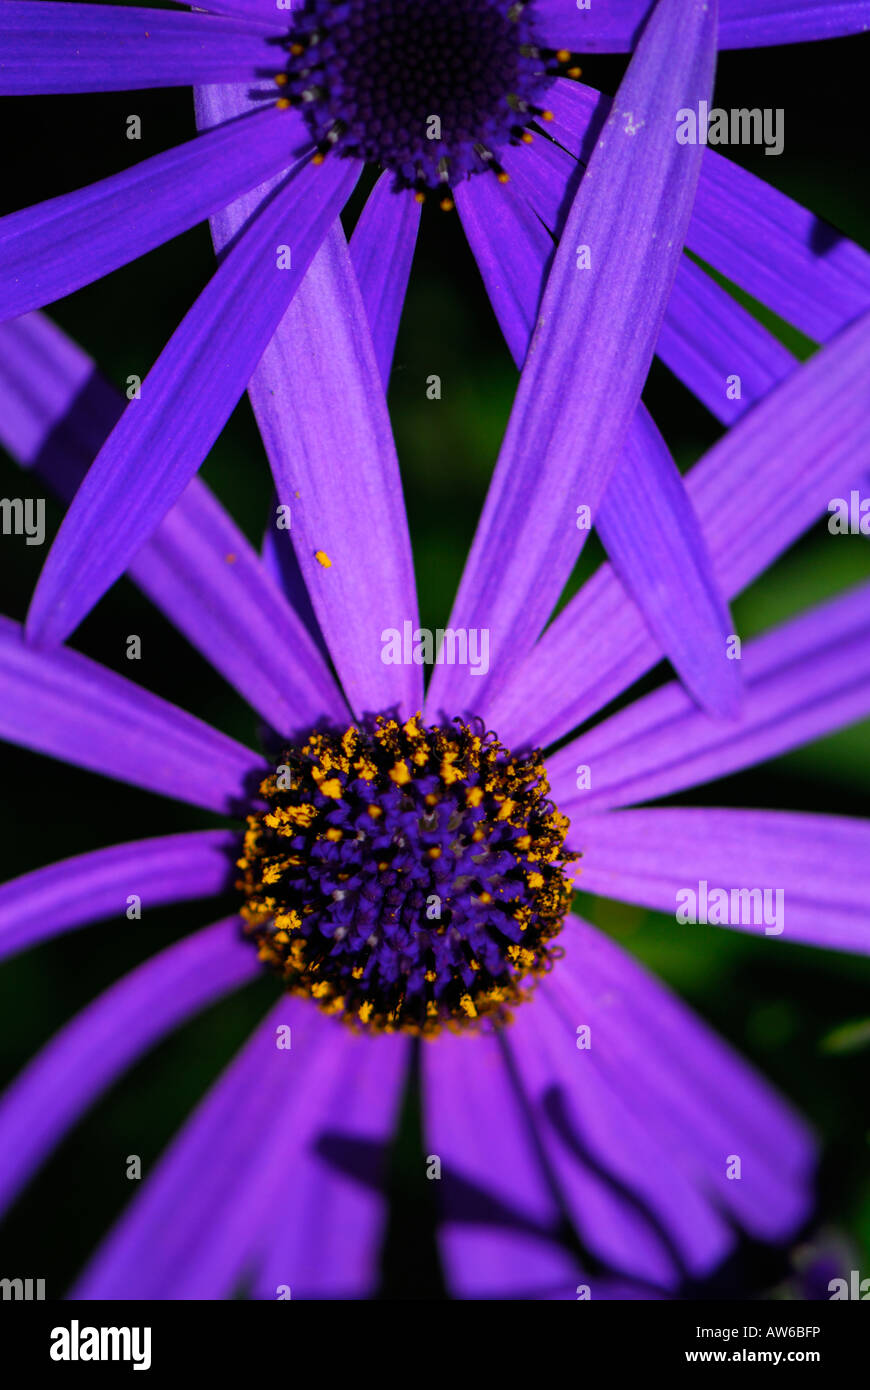 Purple daisy like flowers stock photos purple daisy like flowers bluepurple daisy like flower from the aster family called brachyglottis hectoris izmirmasajfo